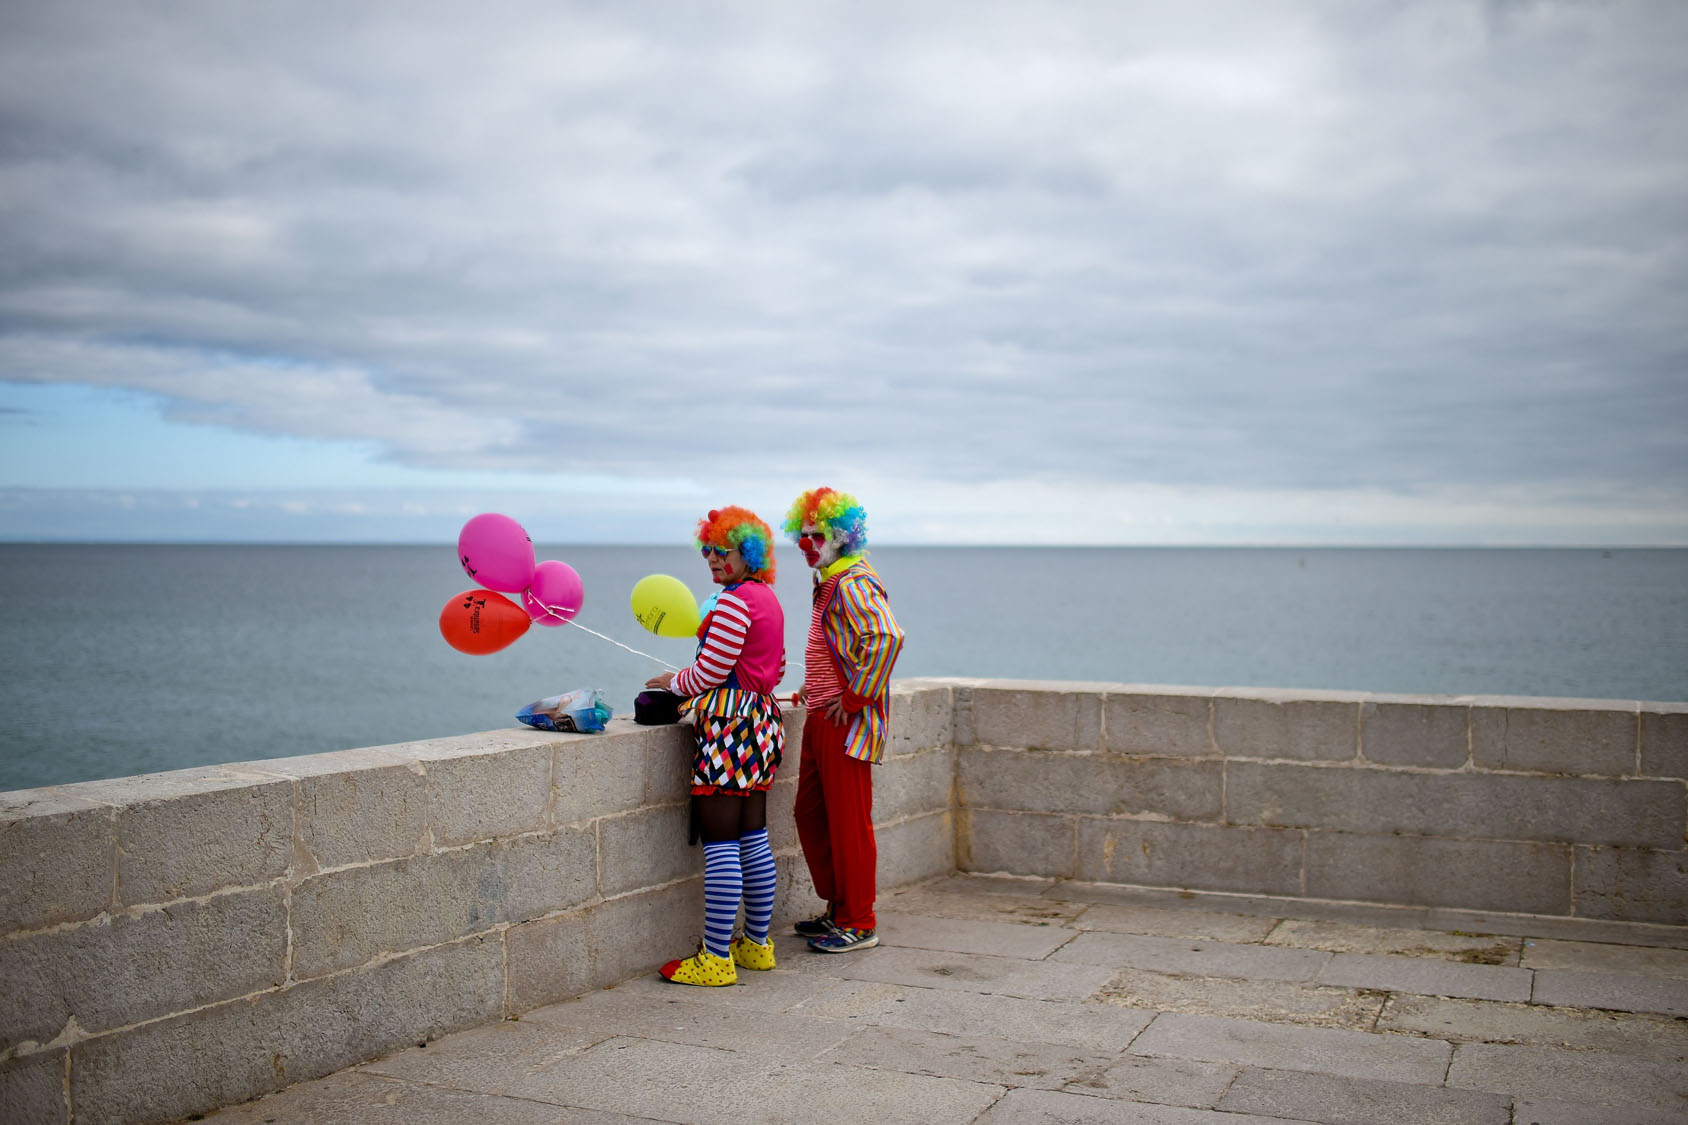 Clowns parade in Portugal